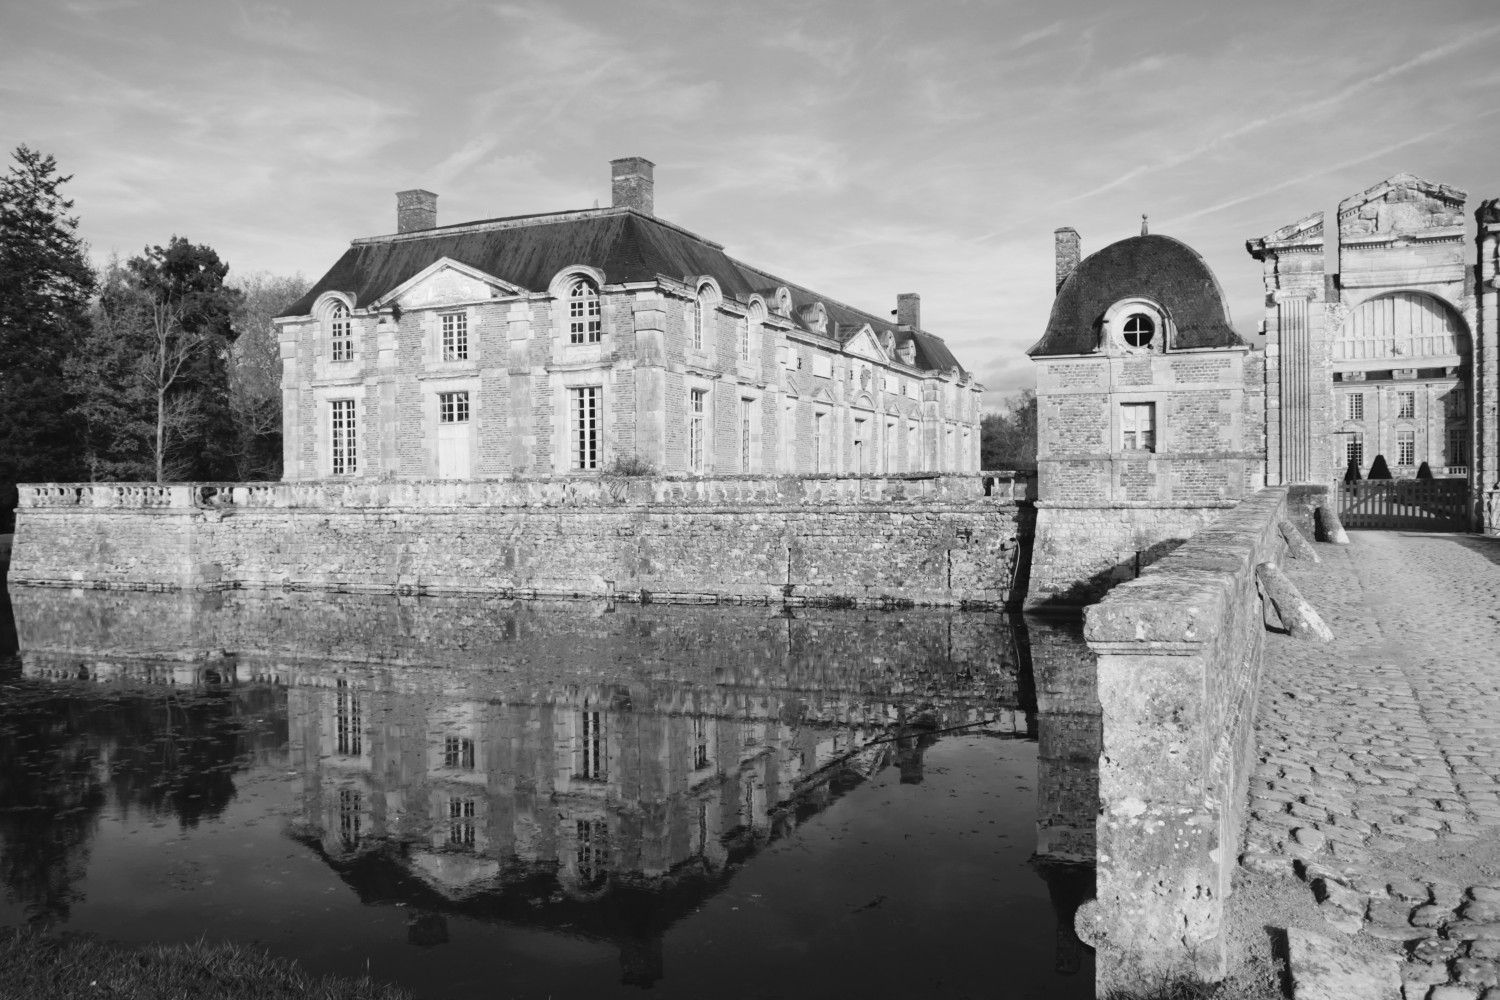 50 shades of Chenonceau